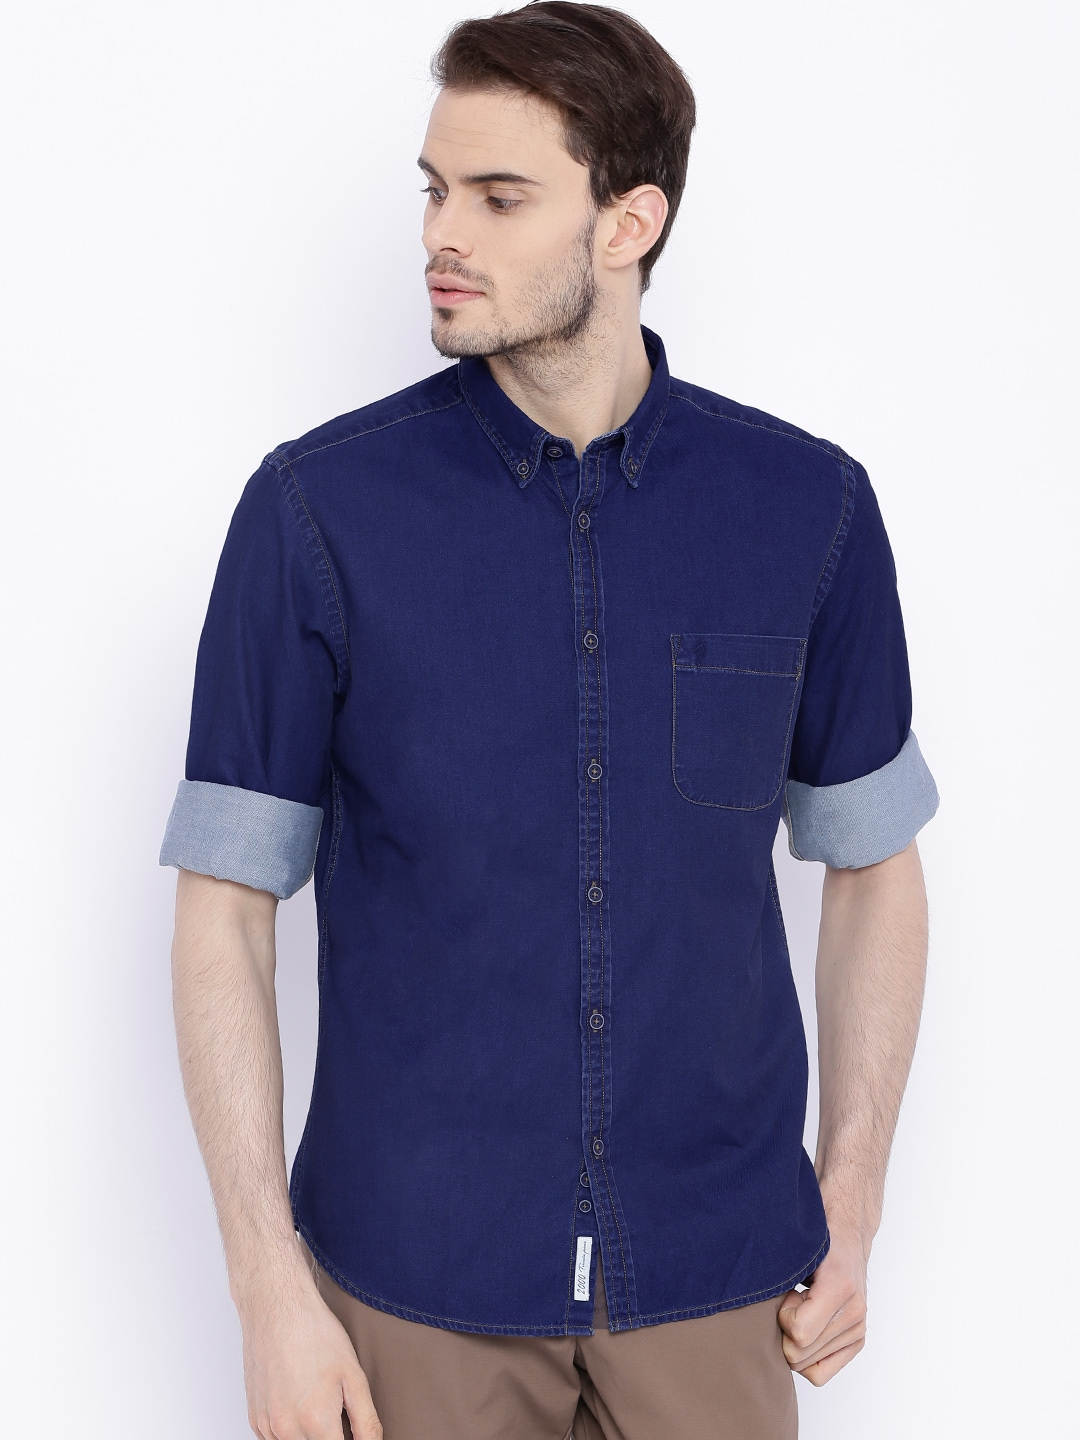 36d98820849 Indian terrain its wash navy denim slim fit smart casual shirt price in  india jpg 1080x1440